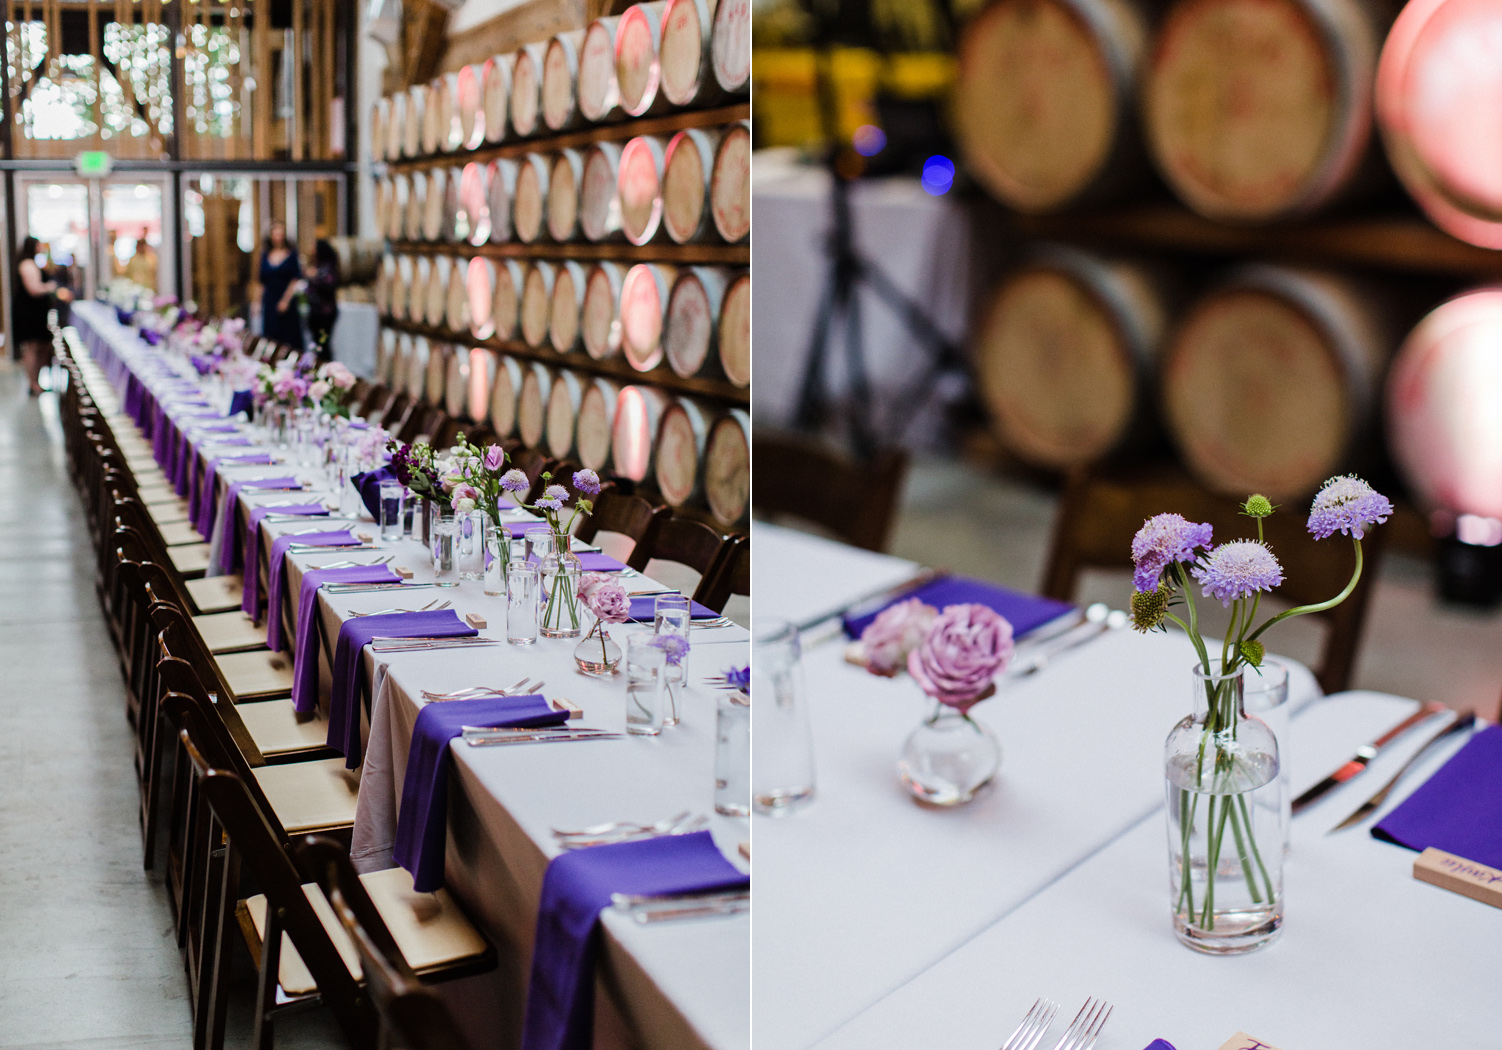 Purple Ombre Farm Table for Wedding Reception at Westland Distillery in SODO Seattle Alexandra Knight Photography